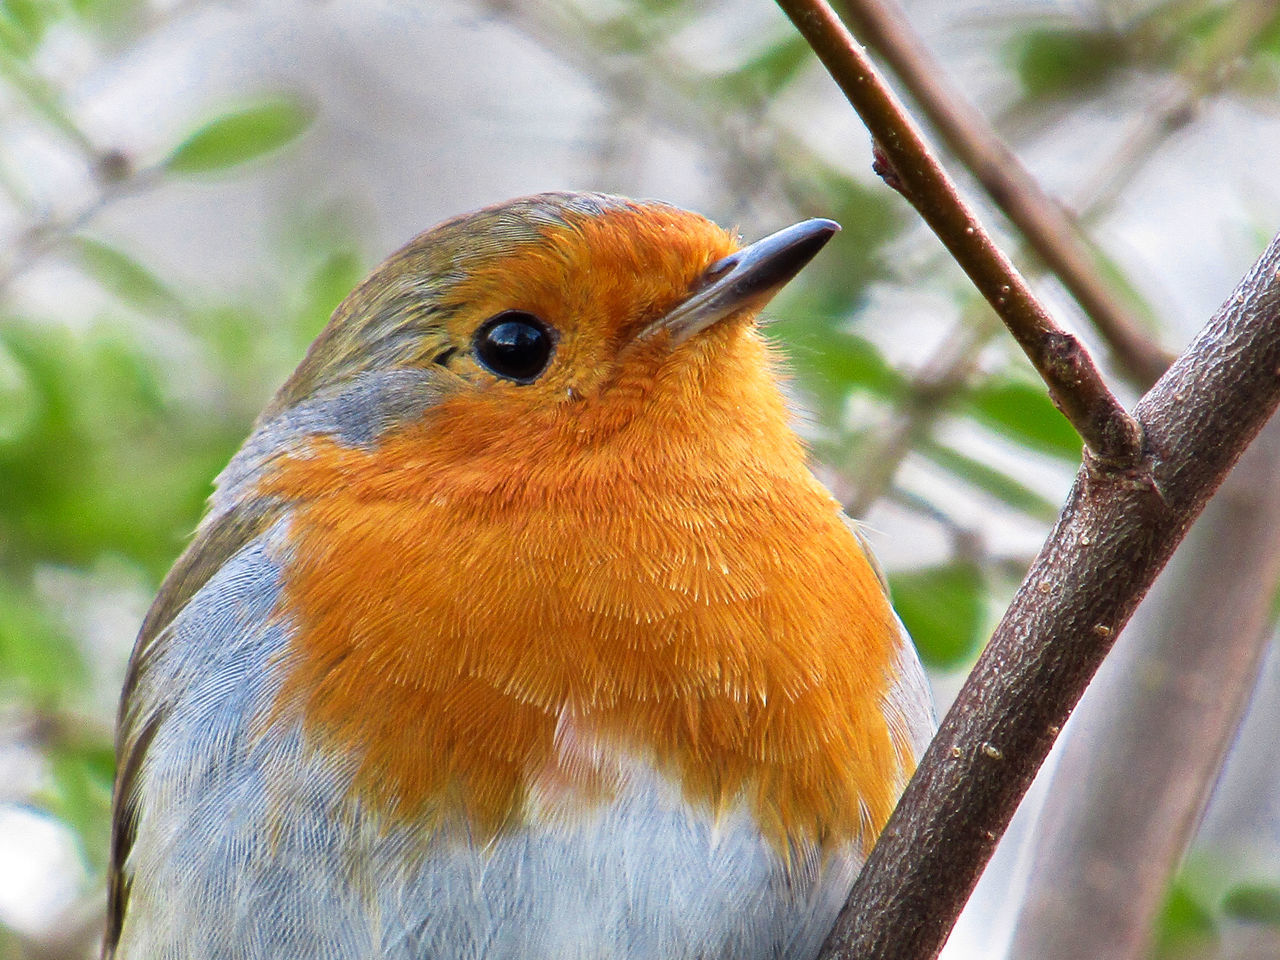 Animal Themes Animal Wildlife Animals In The Wild Beak Bird Close-up Day Focus On Foreground Nature No People One Animal Outdoors Perching Robin Robin Redbreast Tree